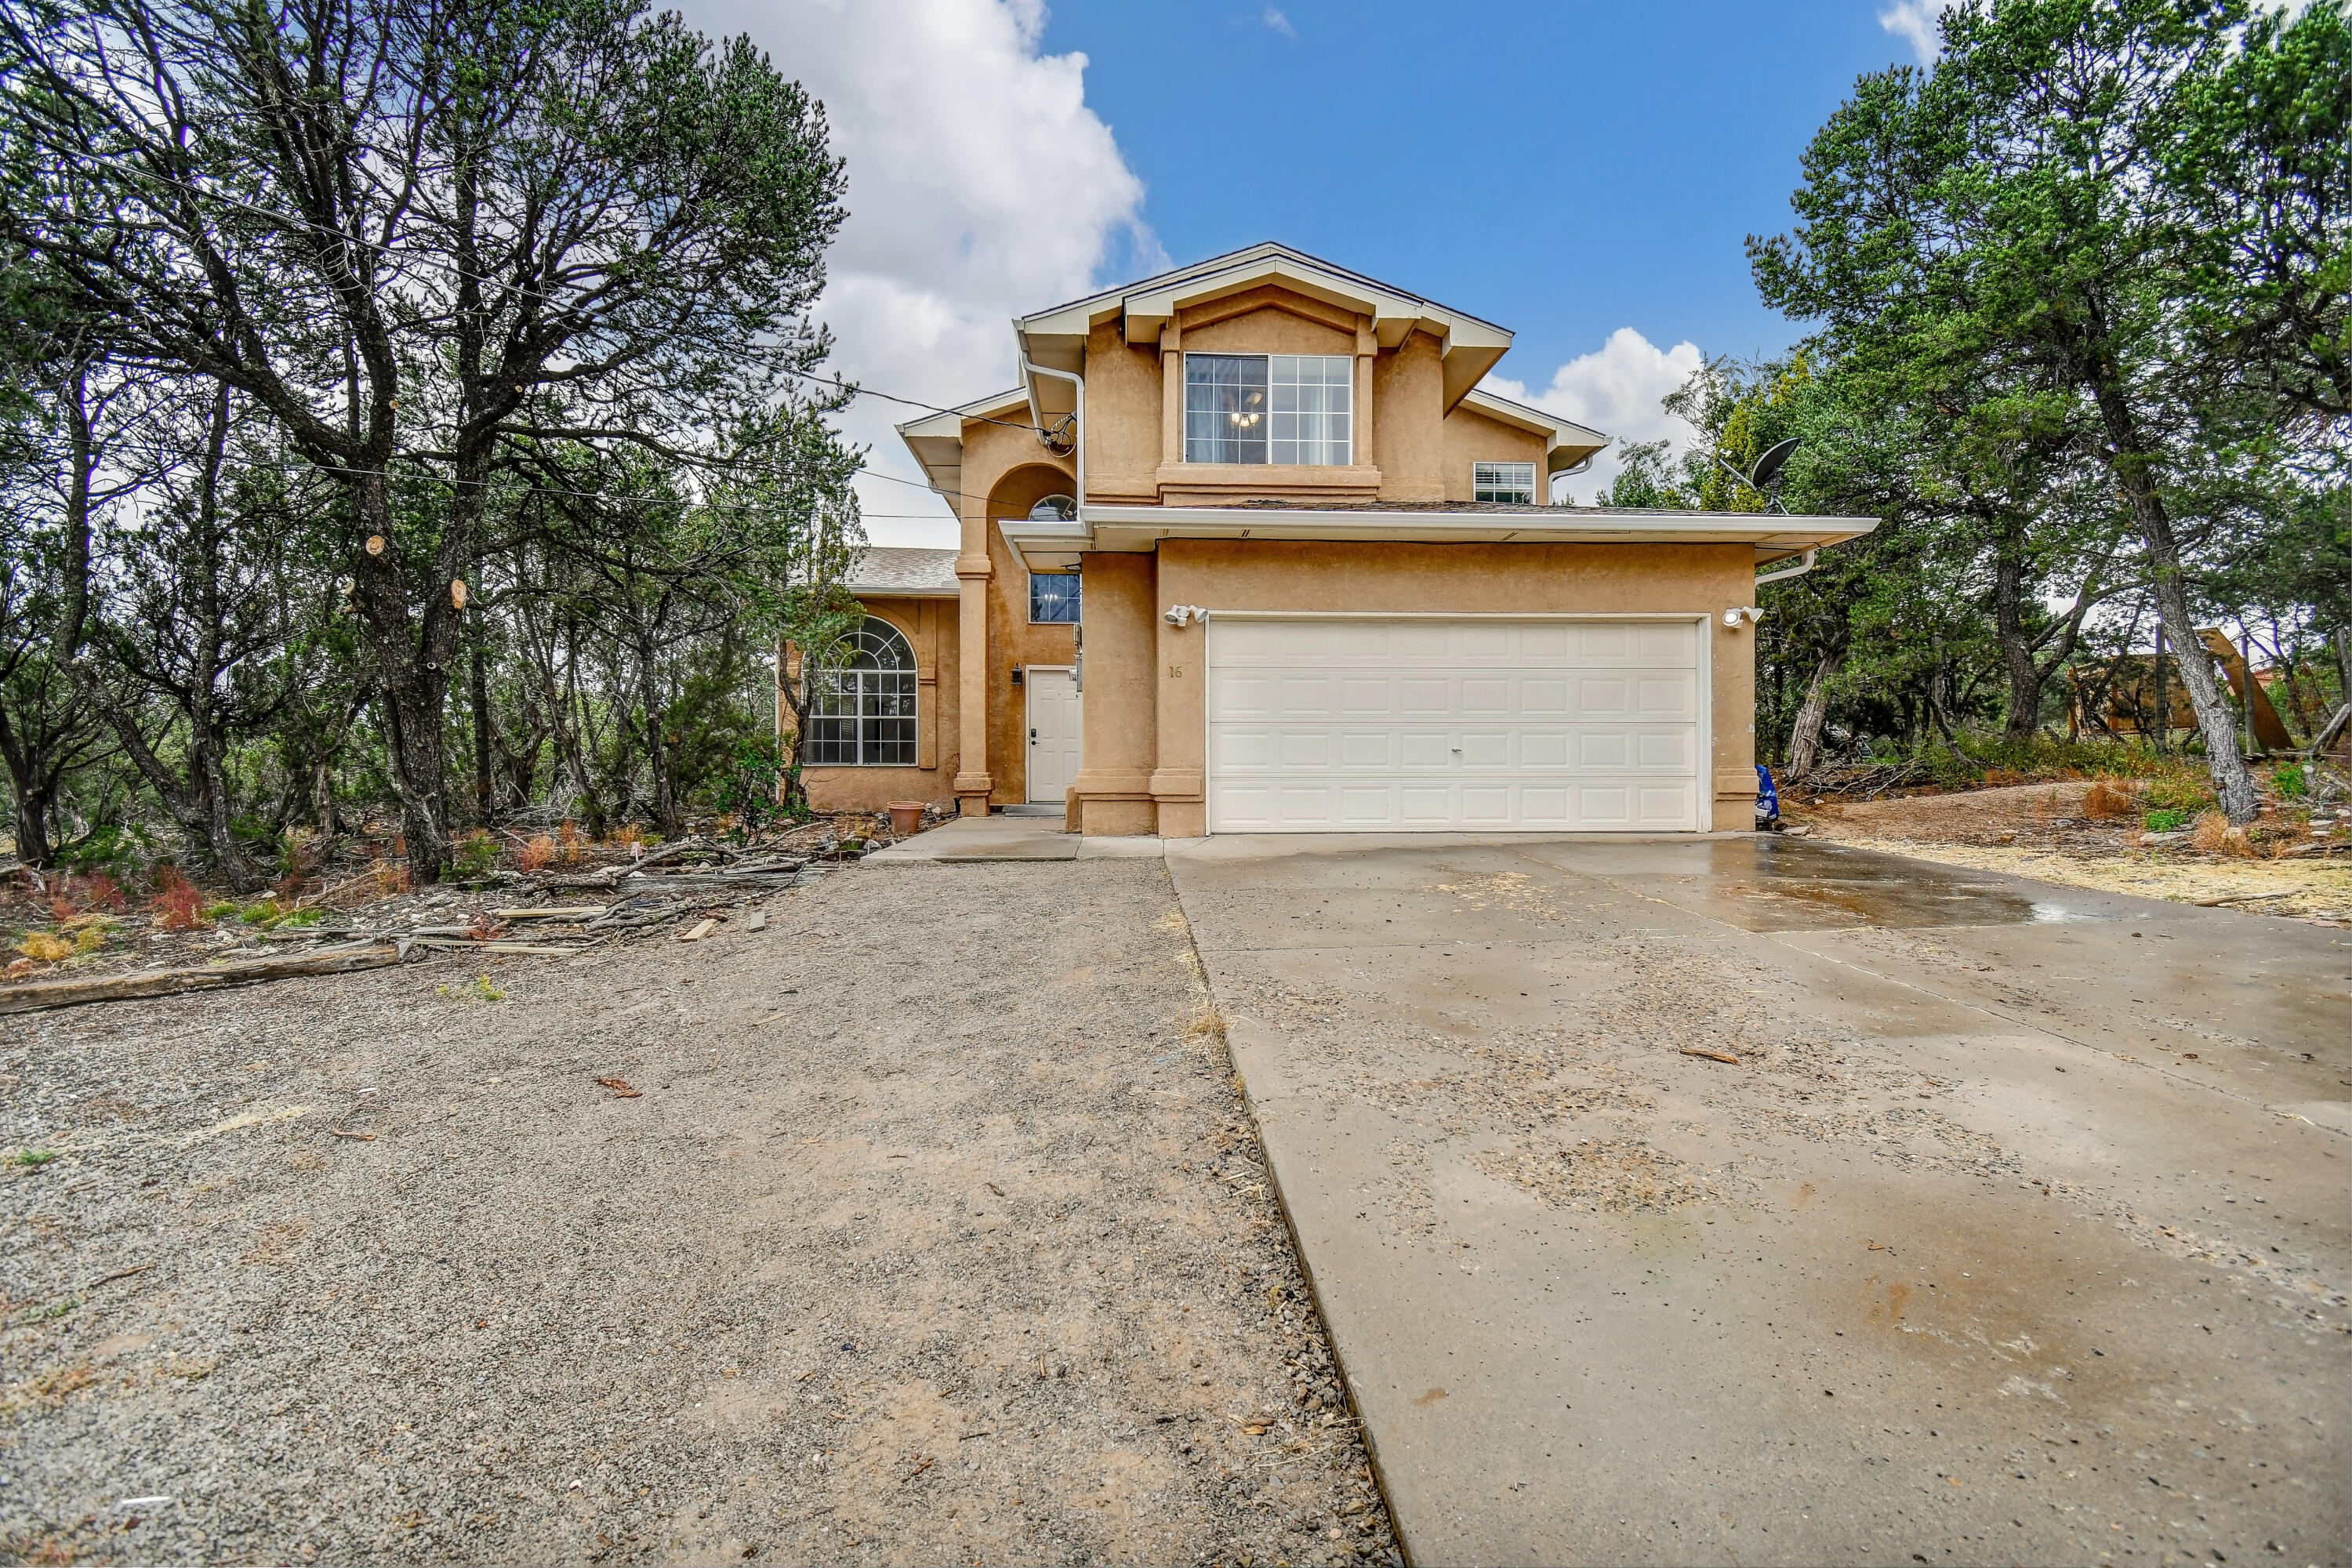 Welcome Home! This amazing home features four bedrooms and an open floor plan with soaring ceilings. The large master retreat includes separate shower/tub, walk in closet, and a private balcony where you can enjoy watching nature from afar. The second living room has a wood burning fireplace. Outside you will find a covered patio where you can relax and enjoy the views.